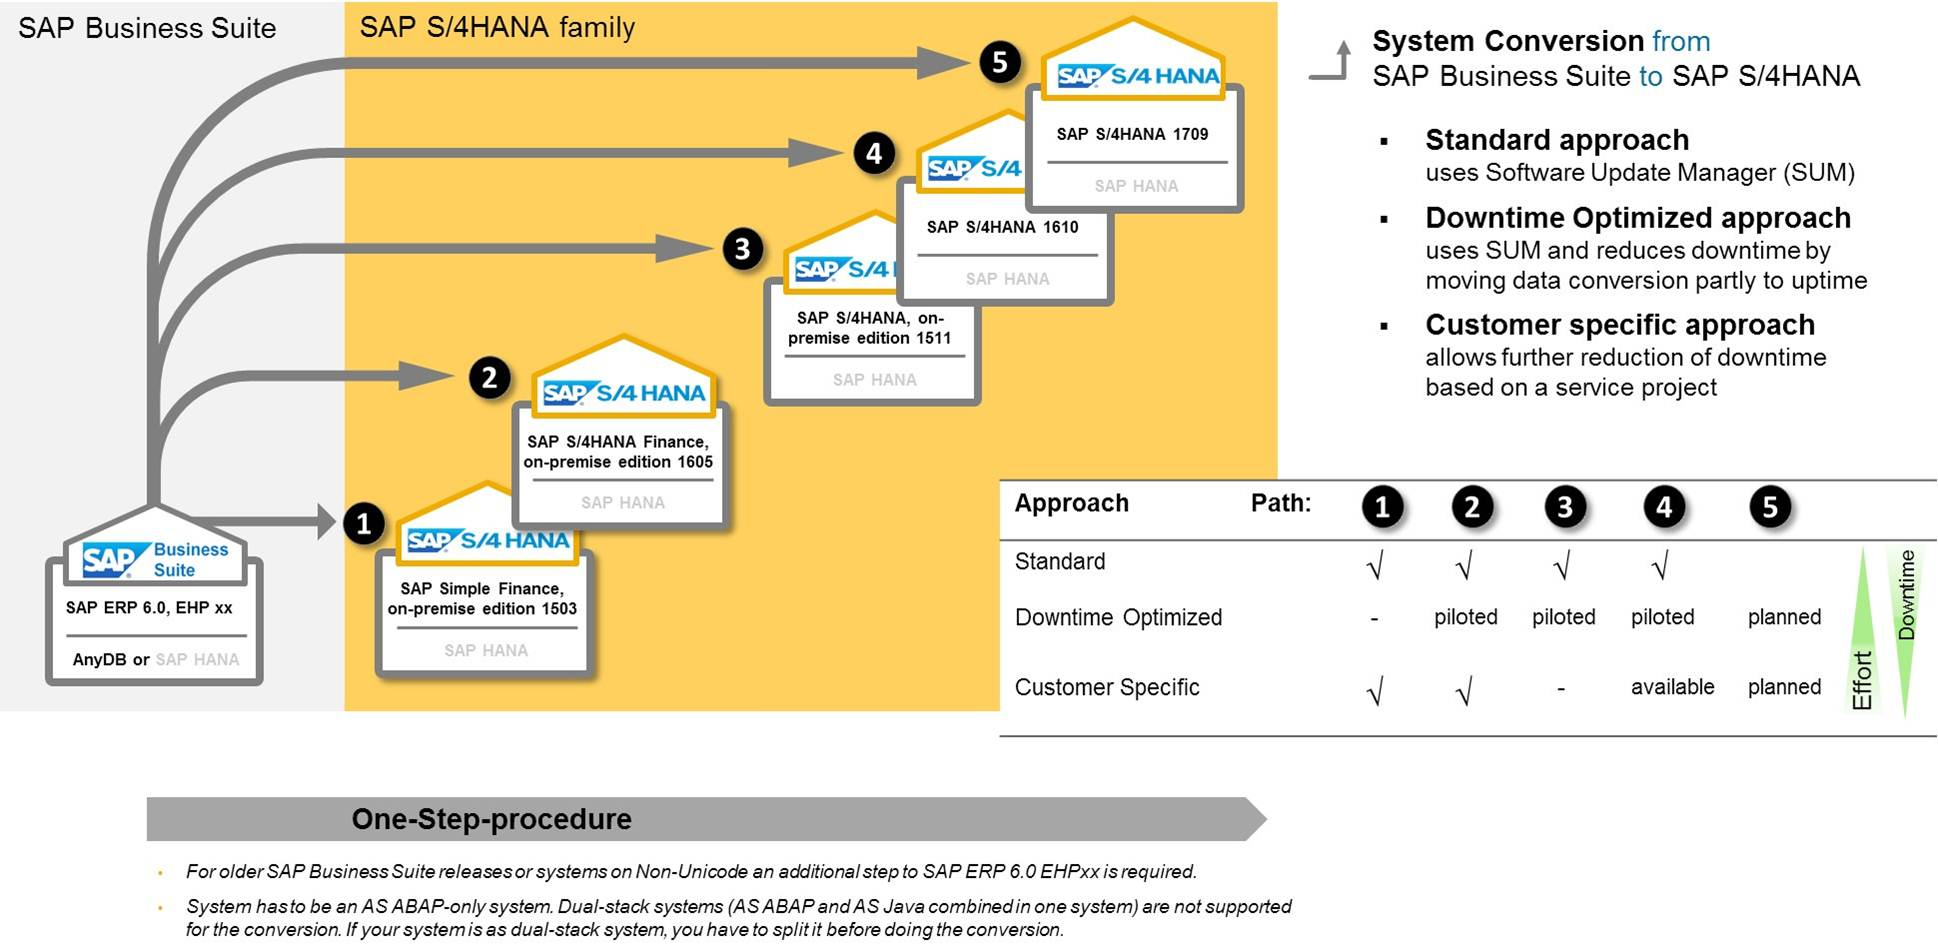 S4HANA-system conversion